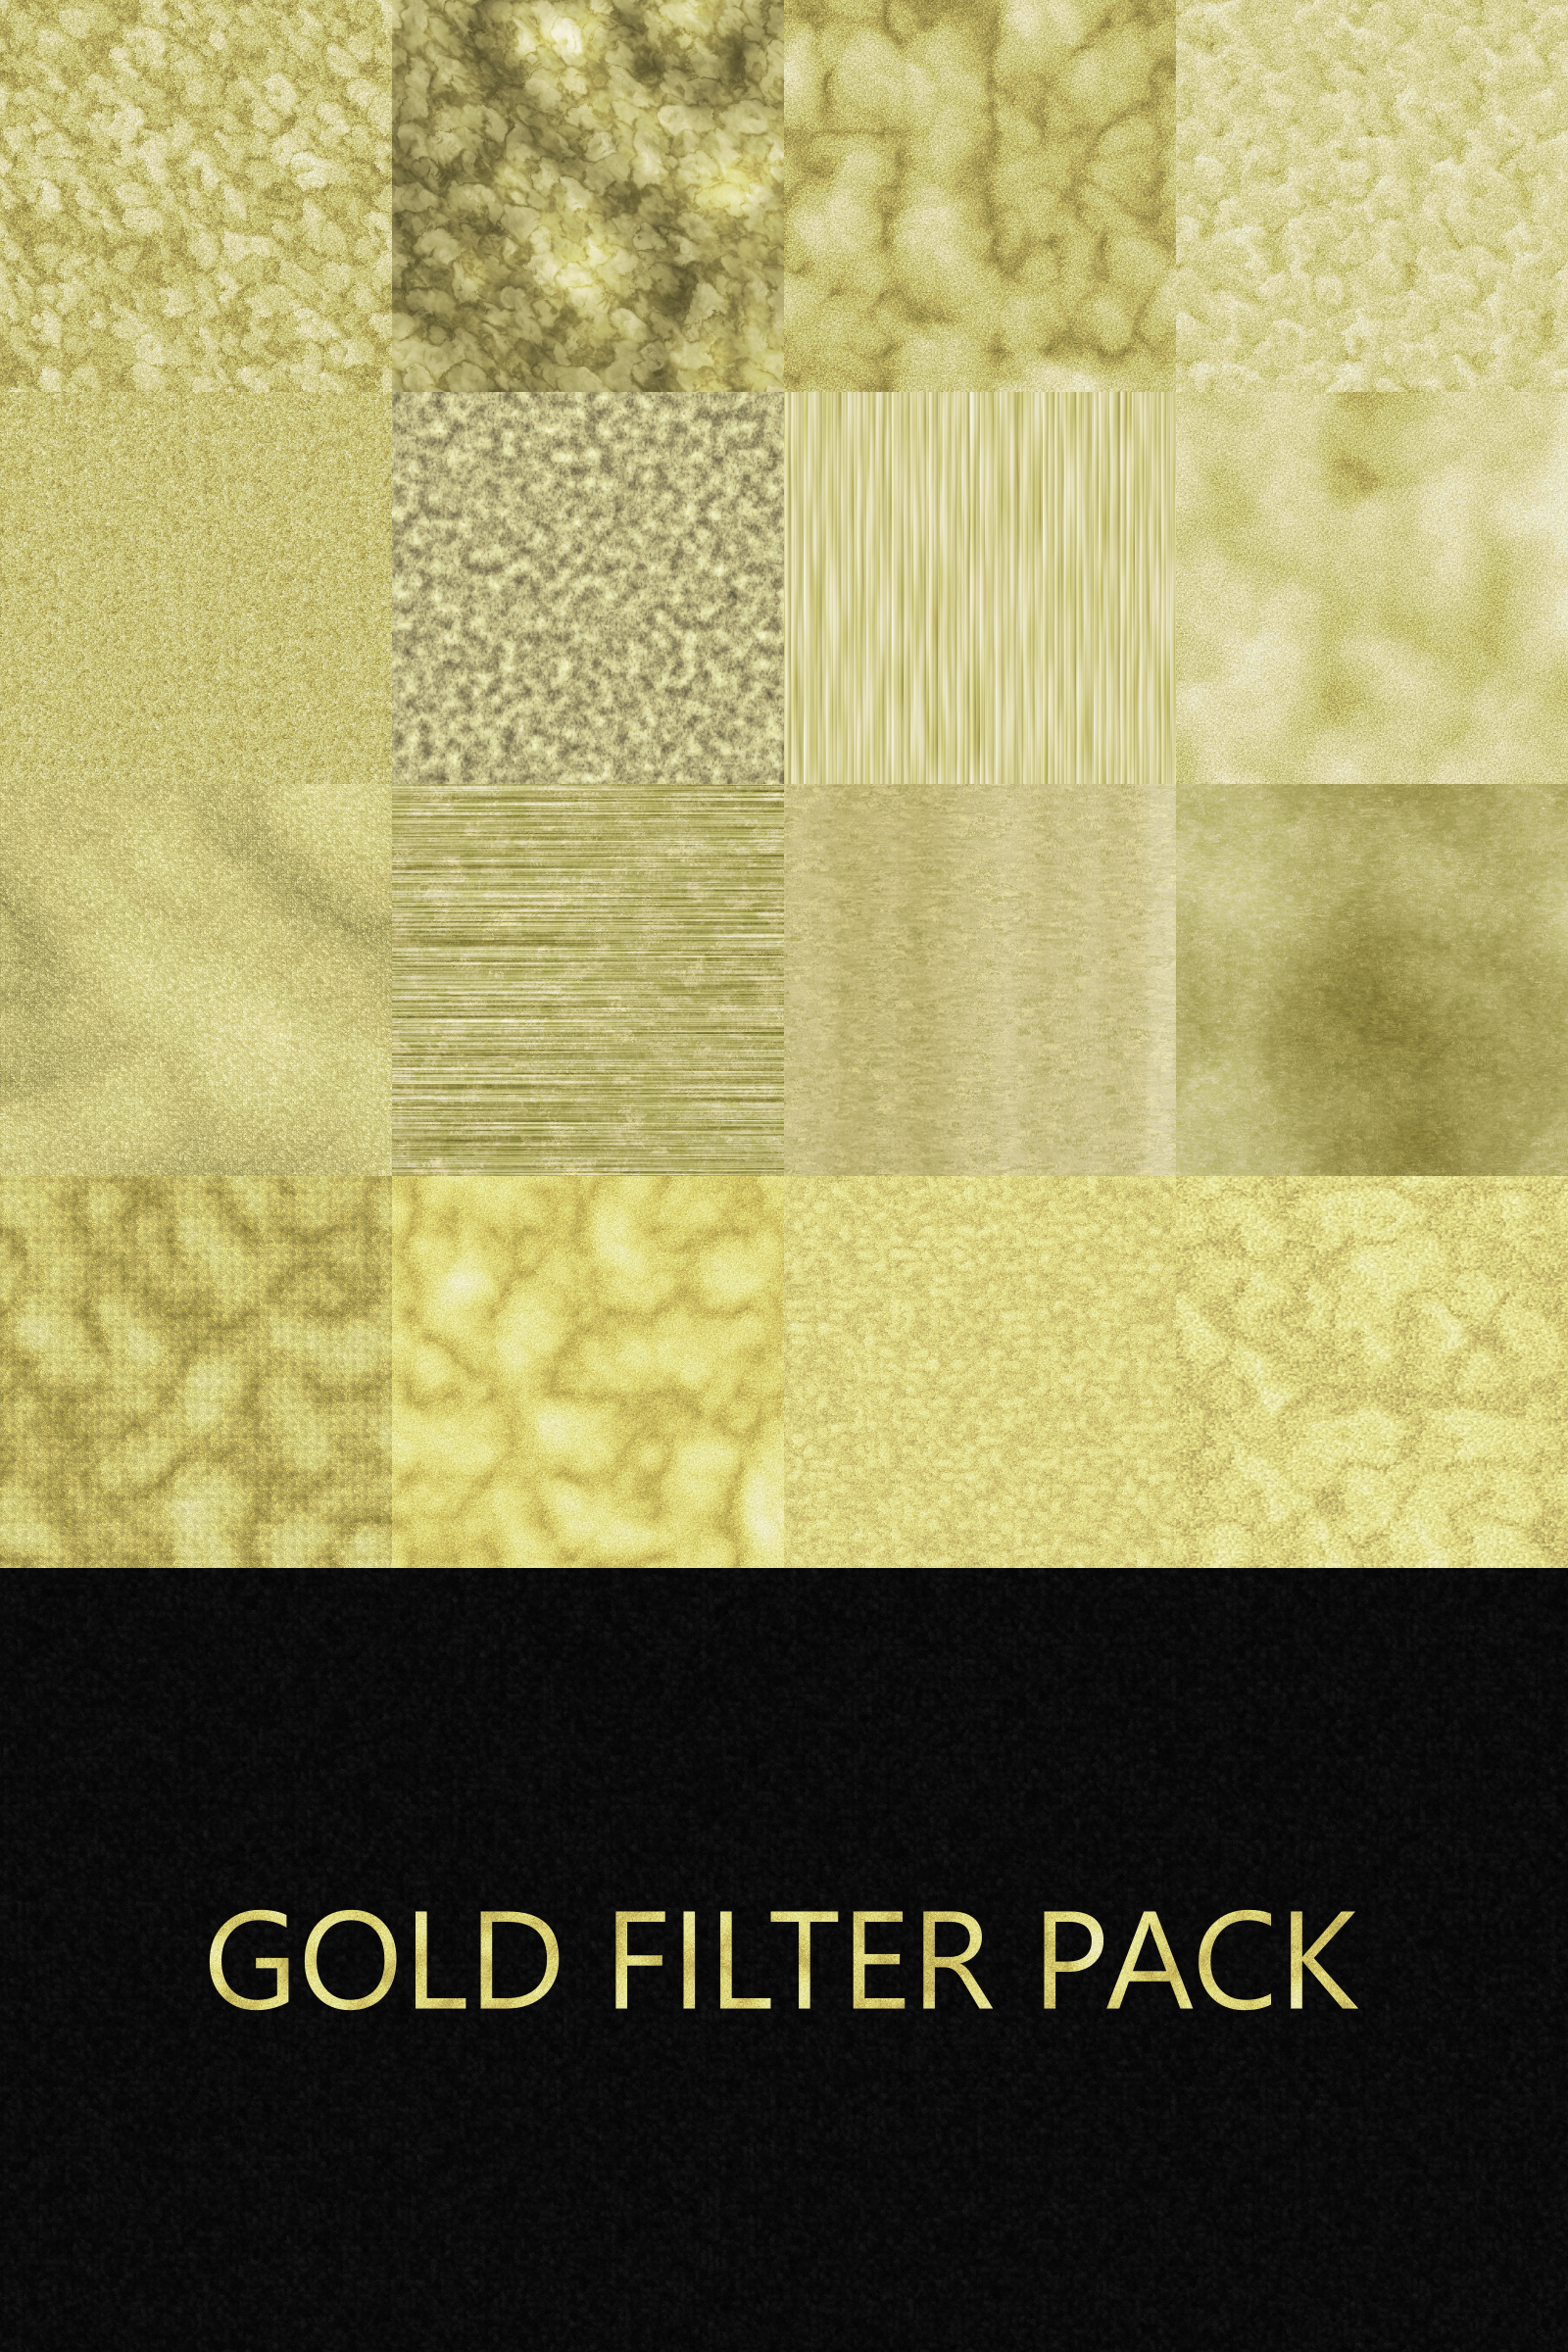 glossy foil filter pack by Lazur URH